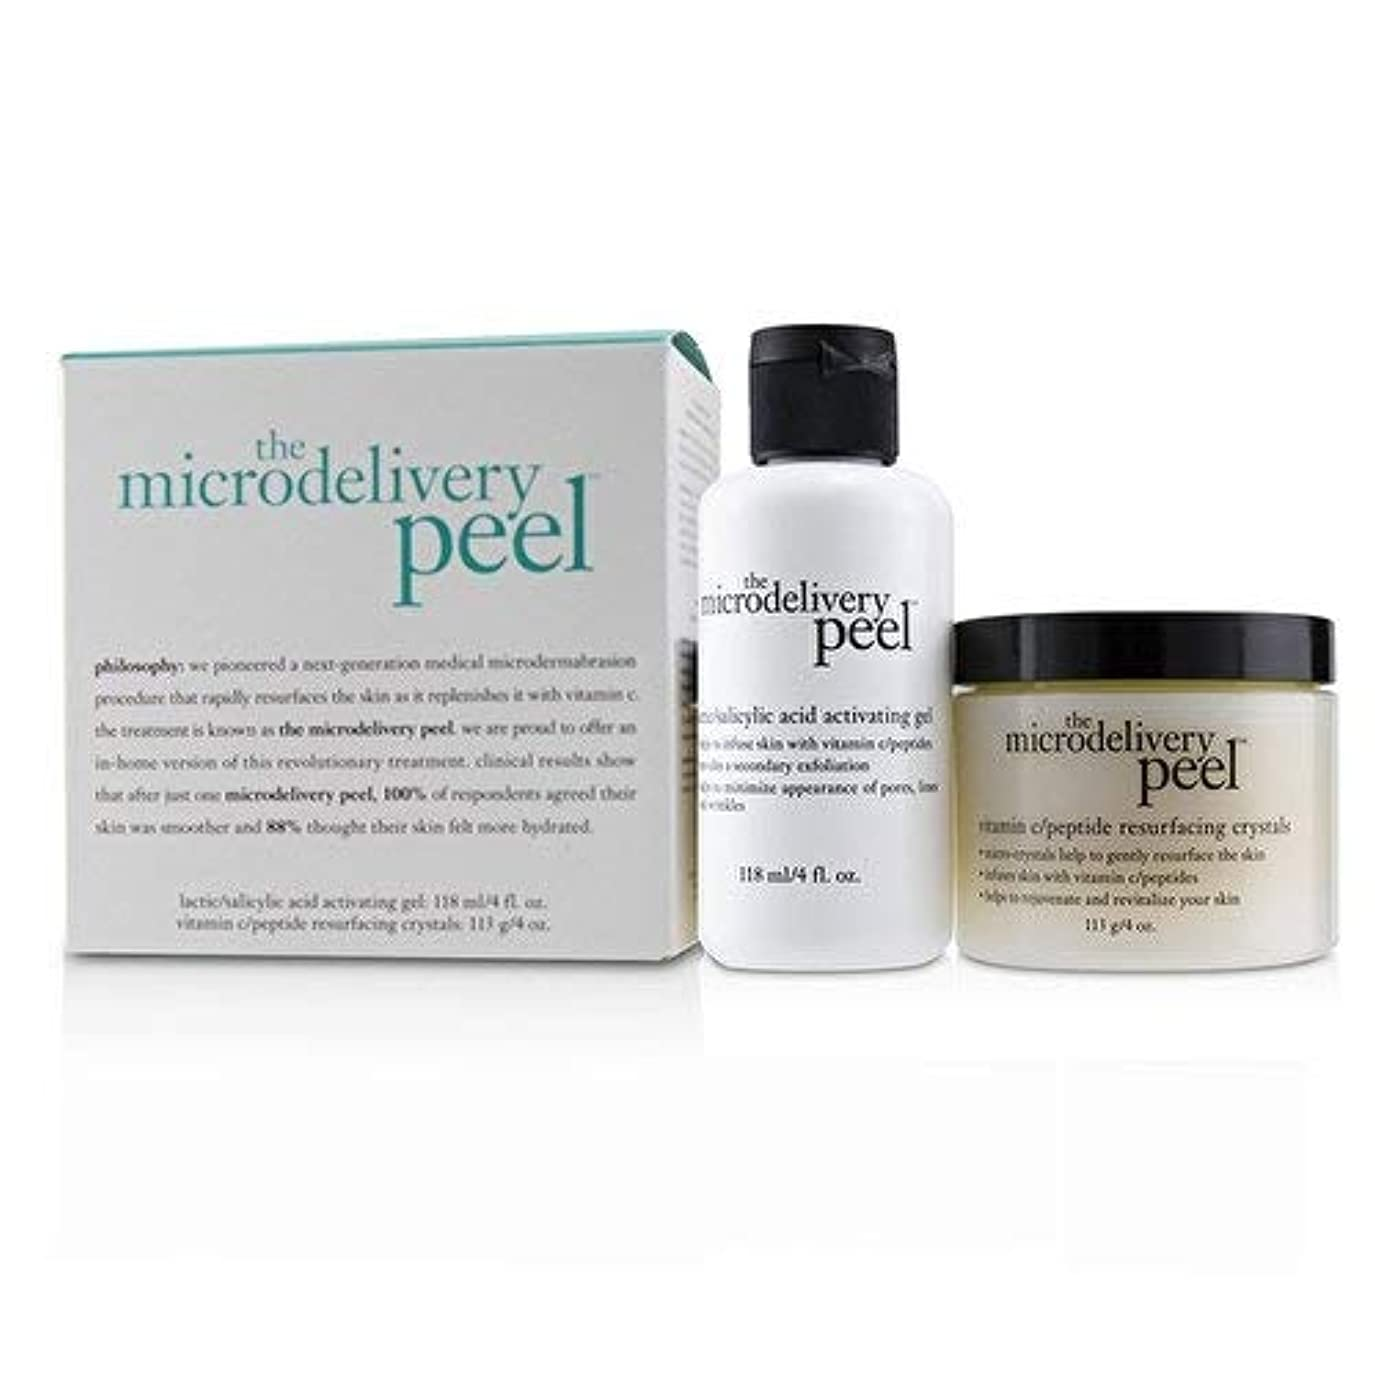 しがみつく一時解雇するメドレーフィロソフィー The Microdelivery Peel: Lactic/Salicylic Acid Activating Gel 118ml + Vitamin C/Peptide Resurfacing Crystals...